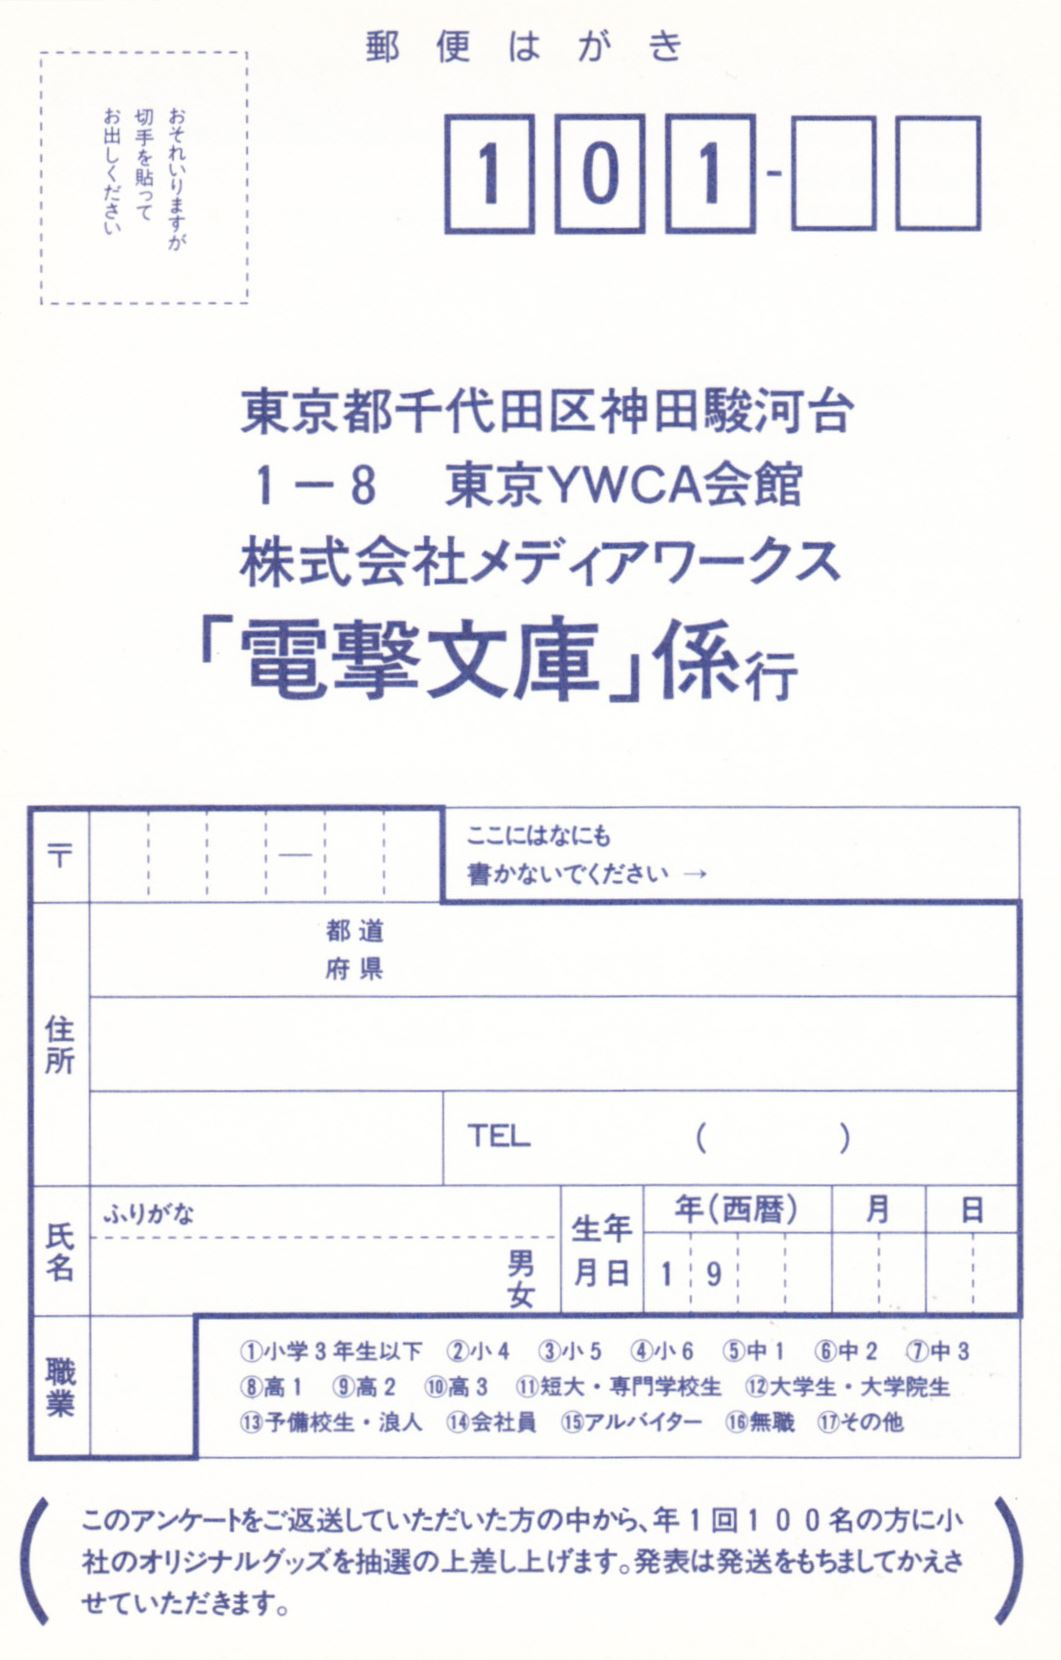 Novel - Dungeon Master II - JP - Registration Card - Front - Scan